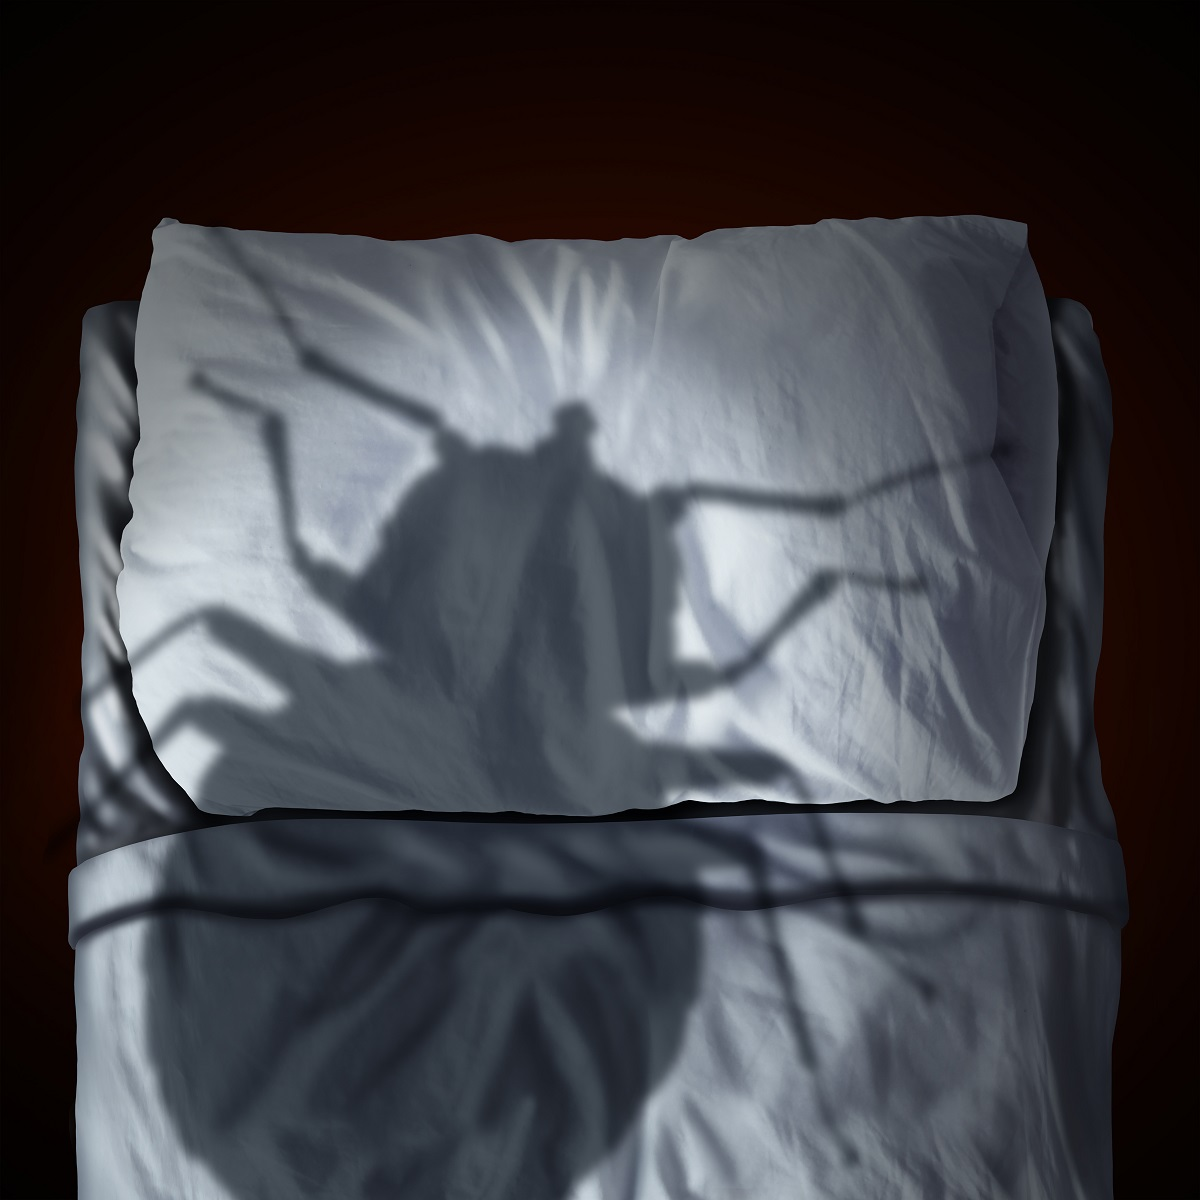 Bed bug shadow on a pillow